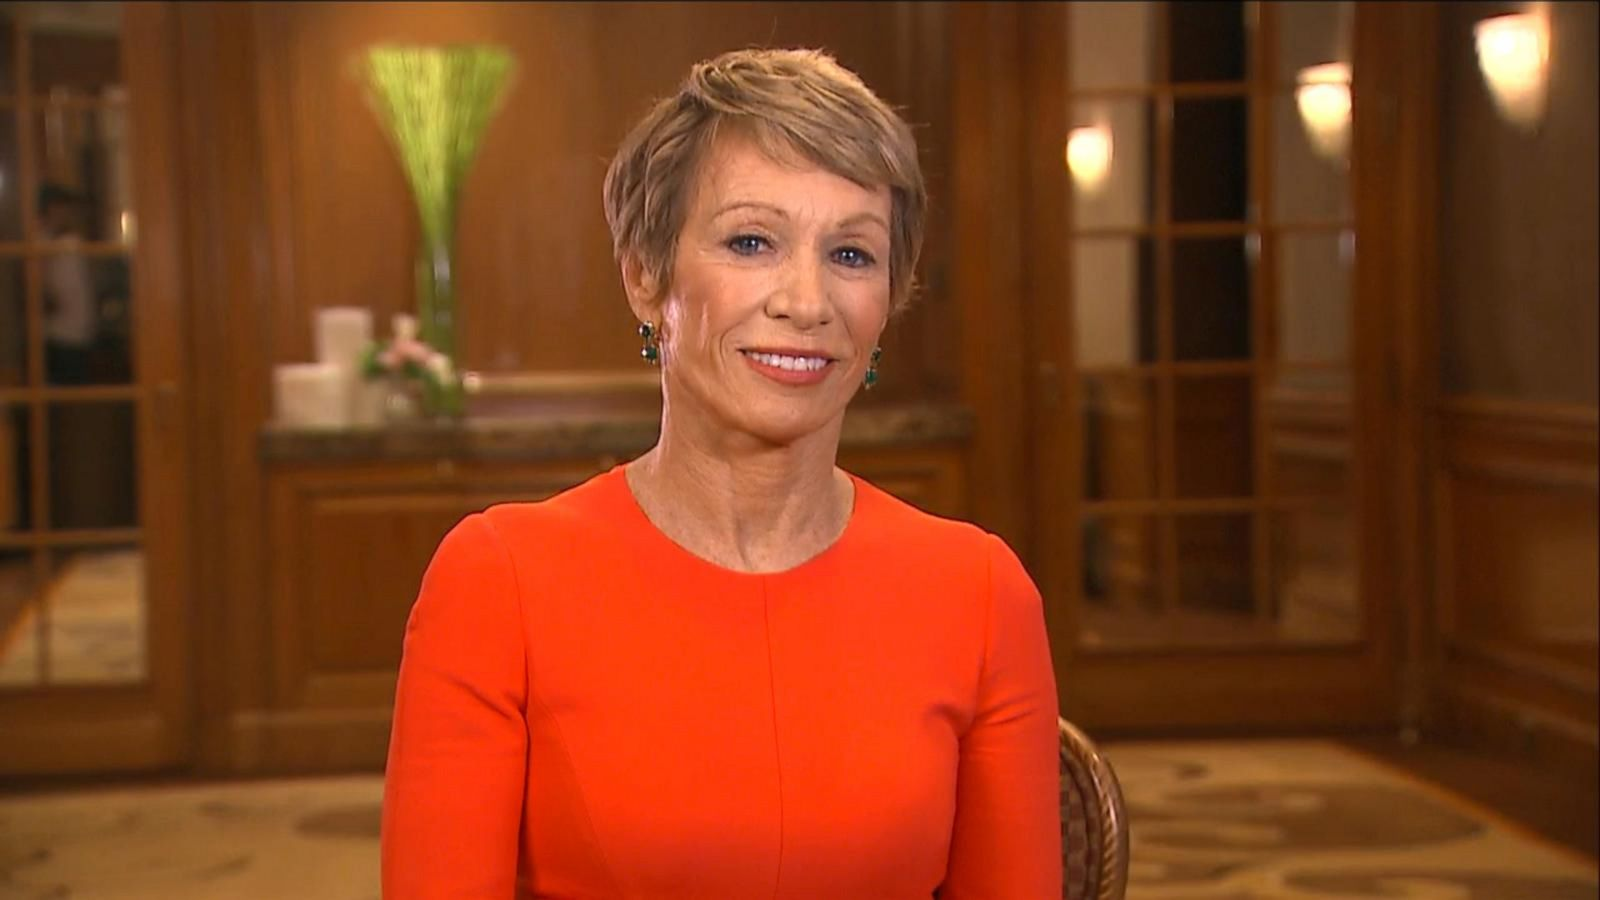 shark tank' star barbara corcoran stands by controversial